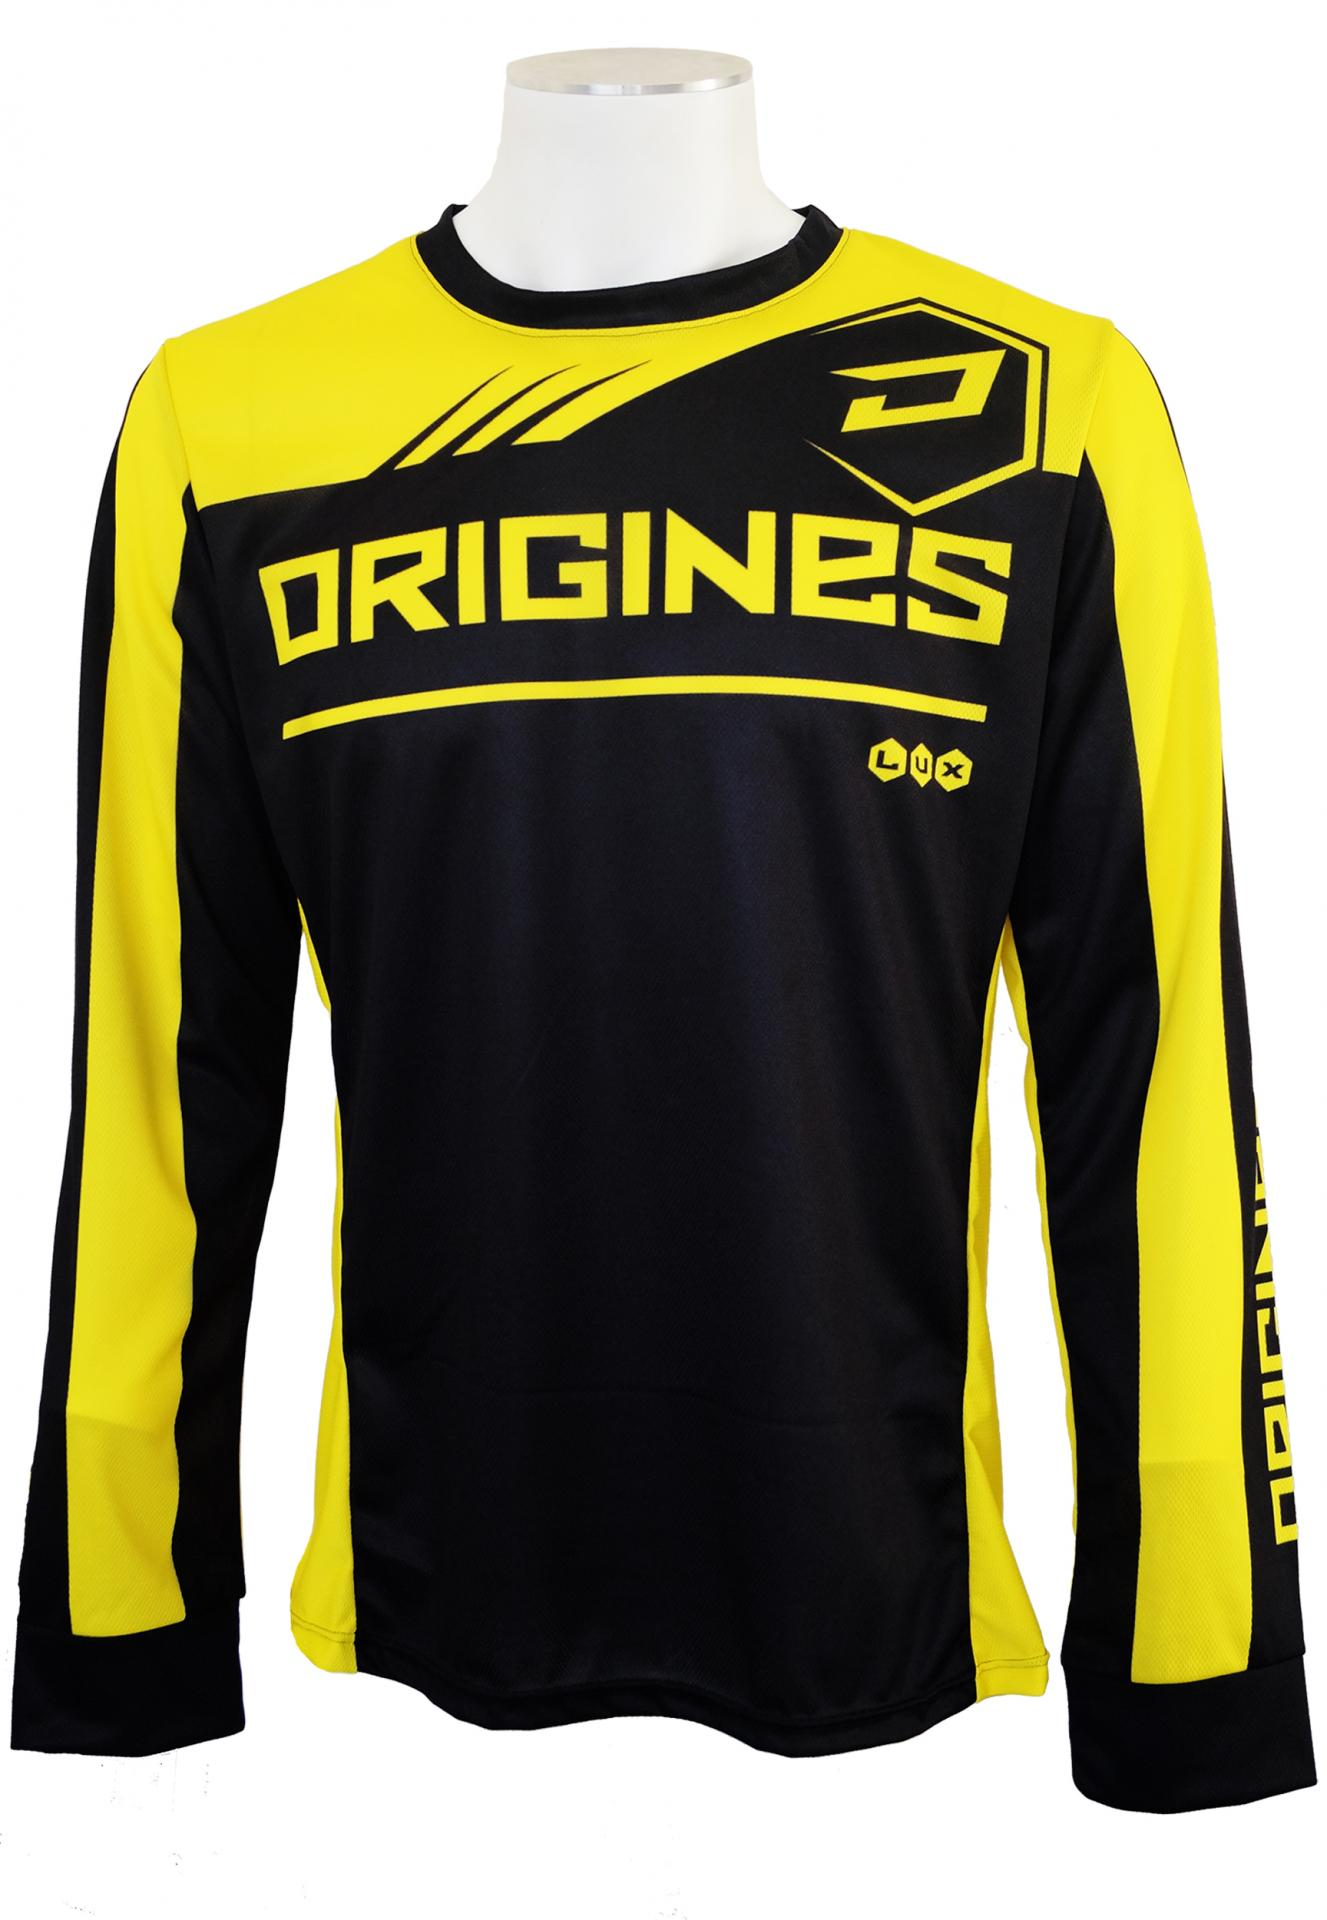 Maillot lux jaune face